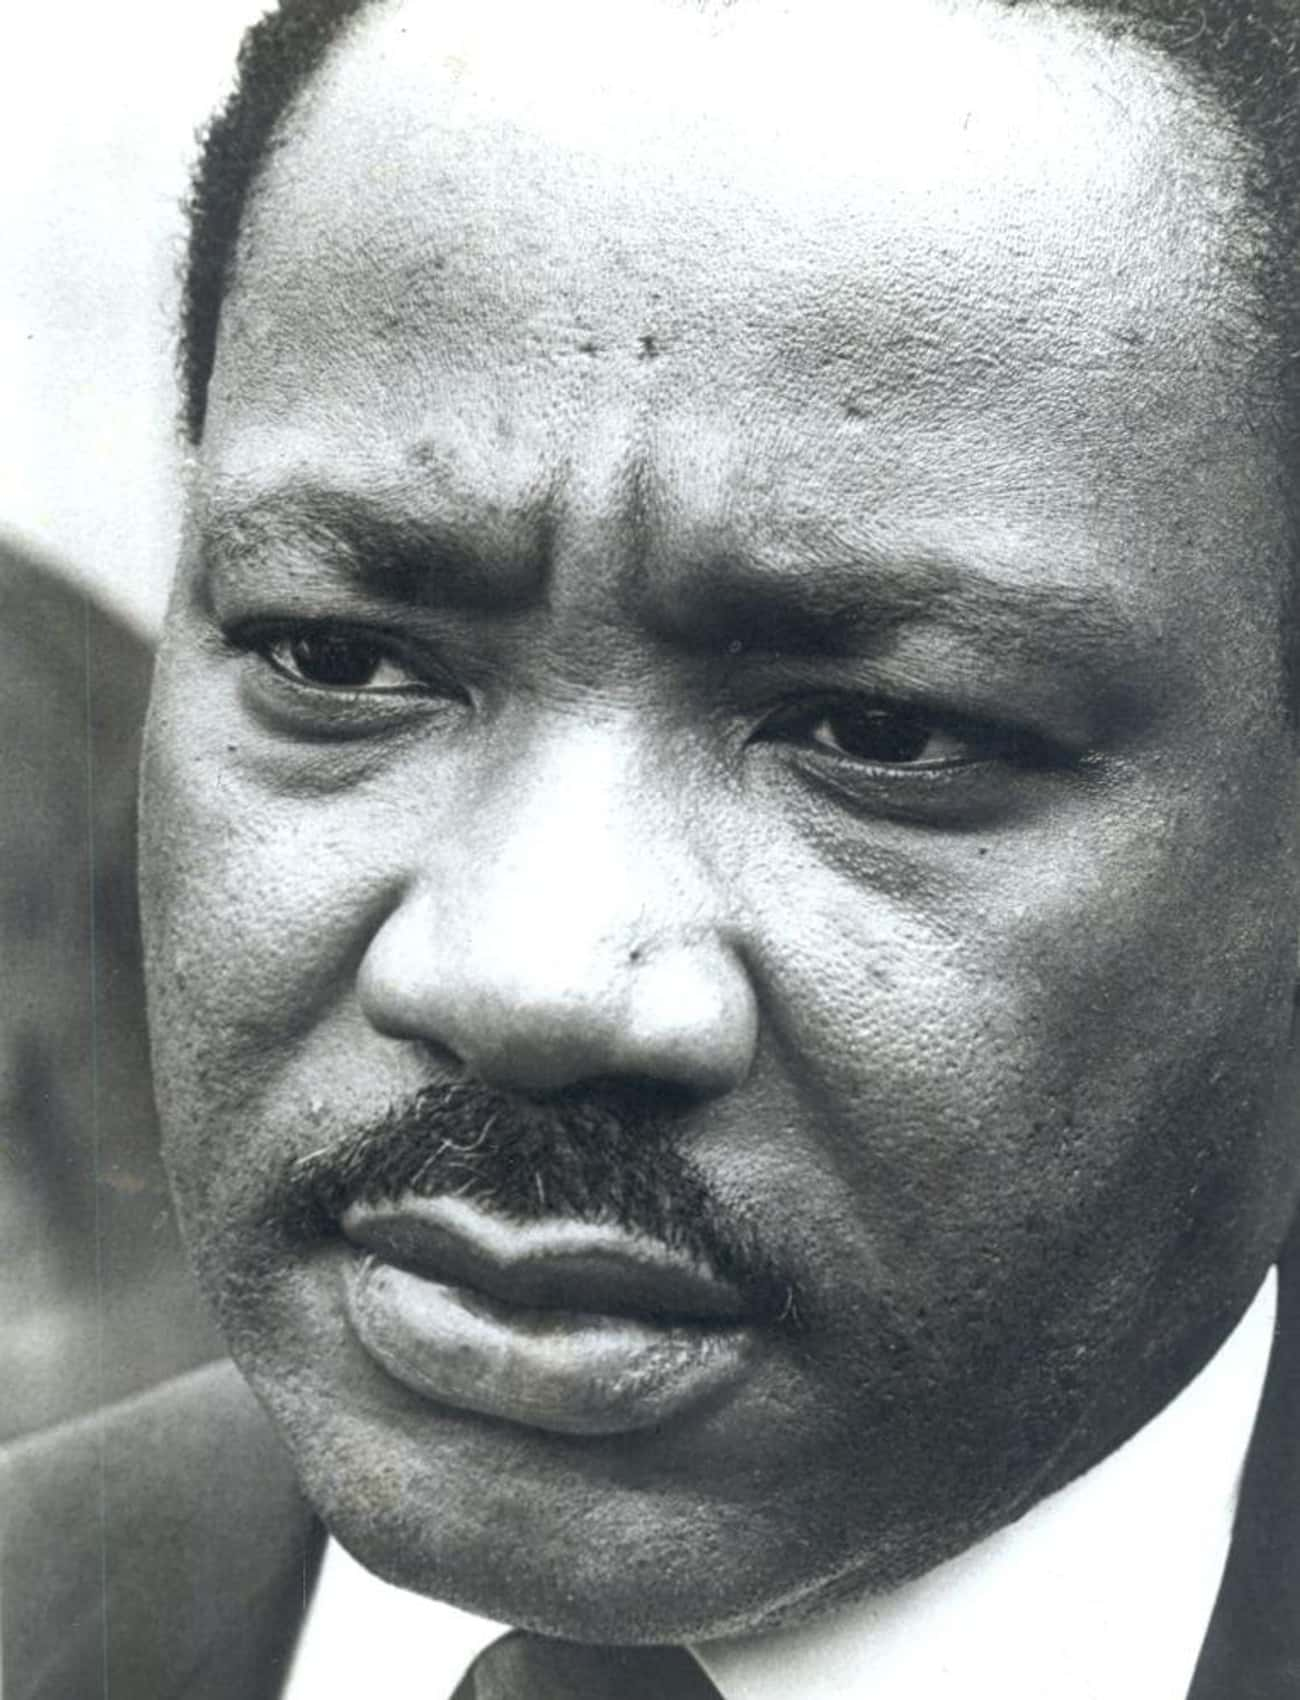 He Tried To Commit Suicide At  is listed (or ranked) 1 on the list 15 Surprising And Little-Known Facts About Martin Luther King Jr.